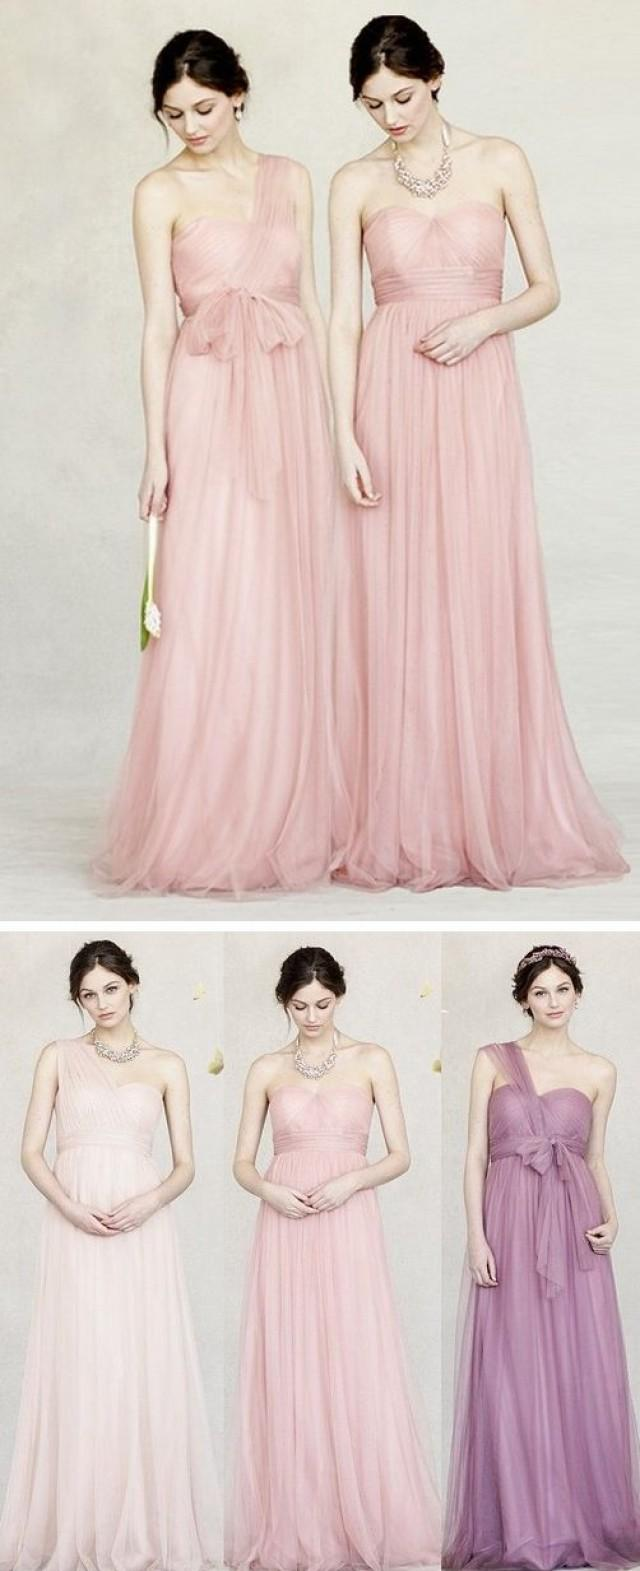 Romantic and ethereal bridesmaid dresses youll love 2312493 romantic and ethereal bridesmaid dresses youll love 2312493 weddbook ombrellifo Images